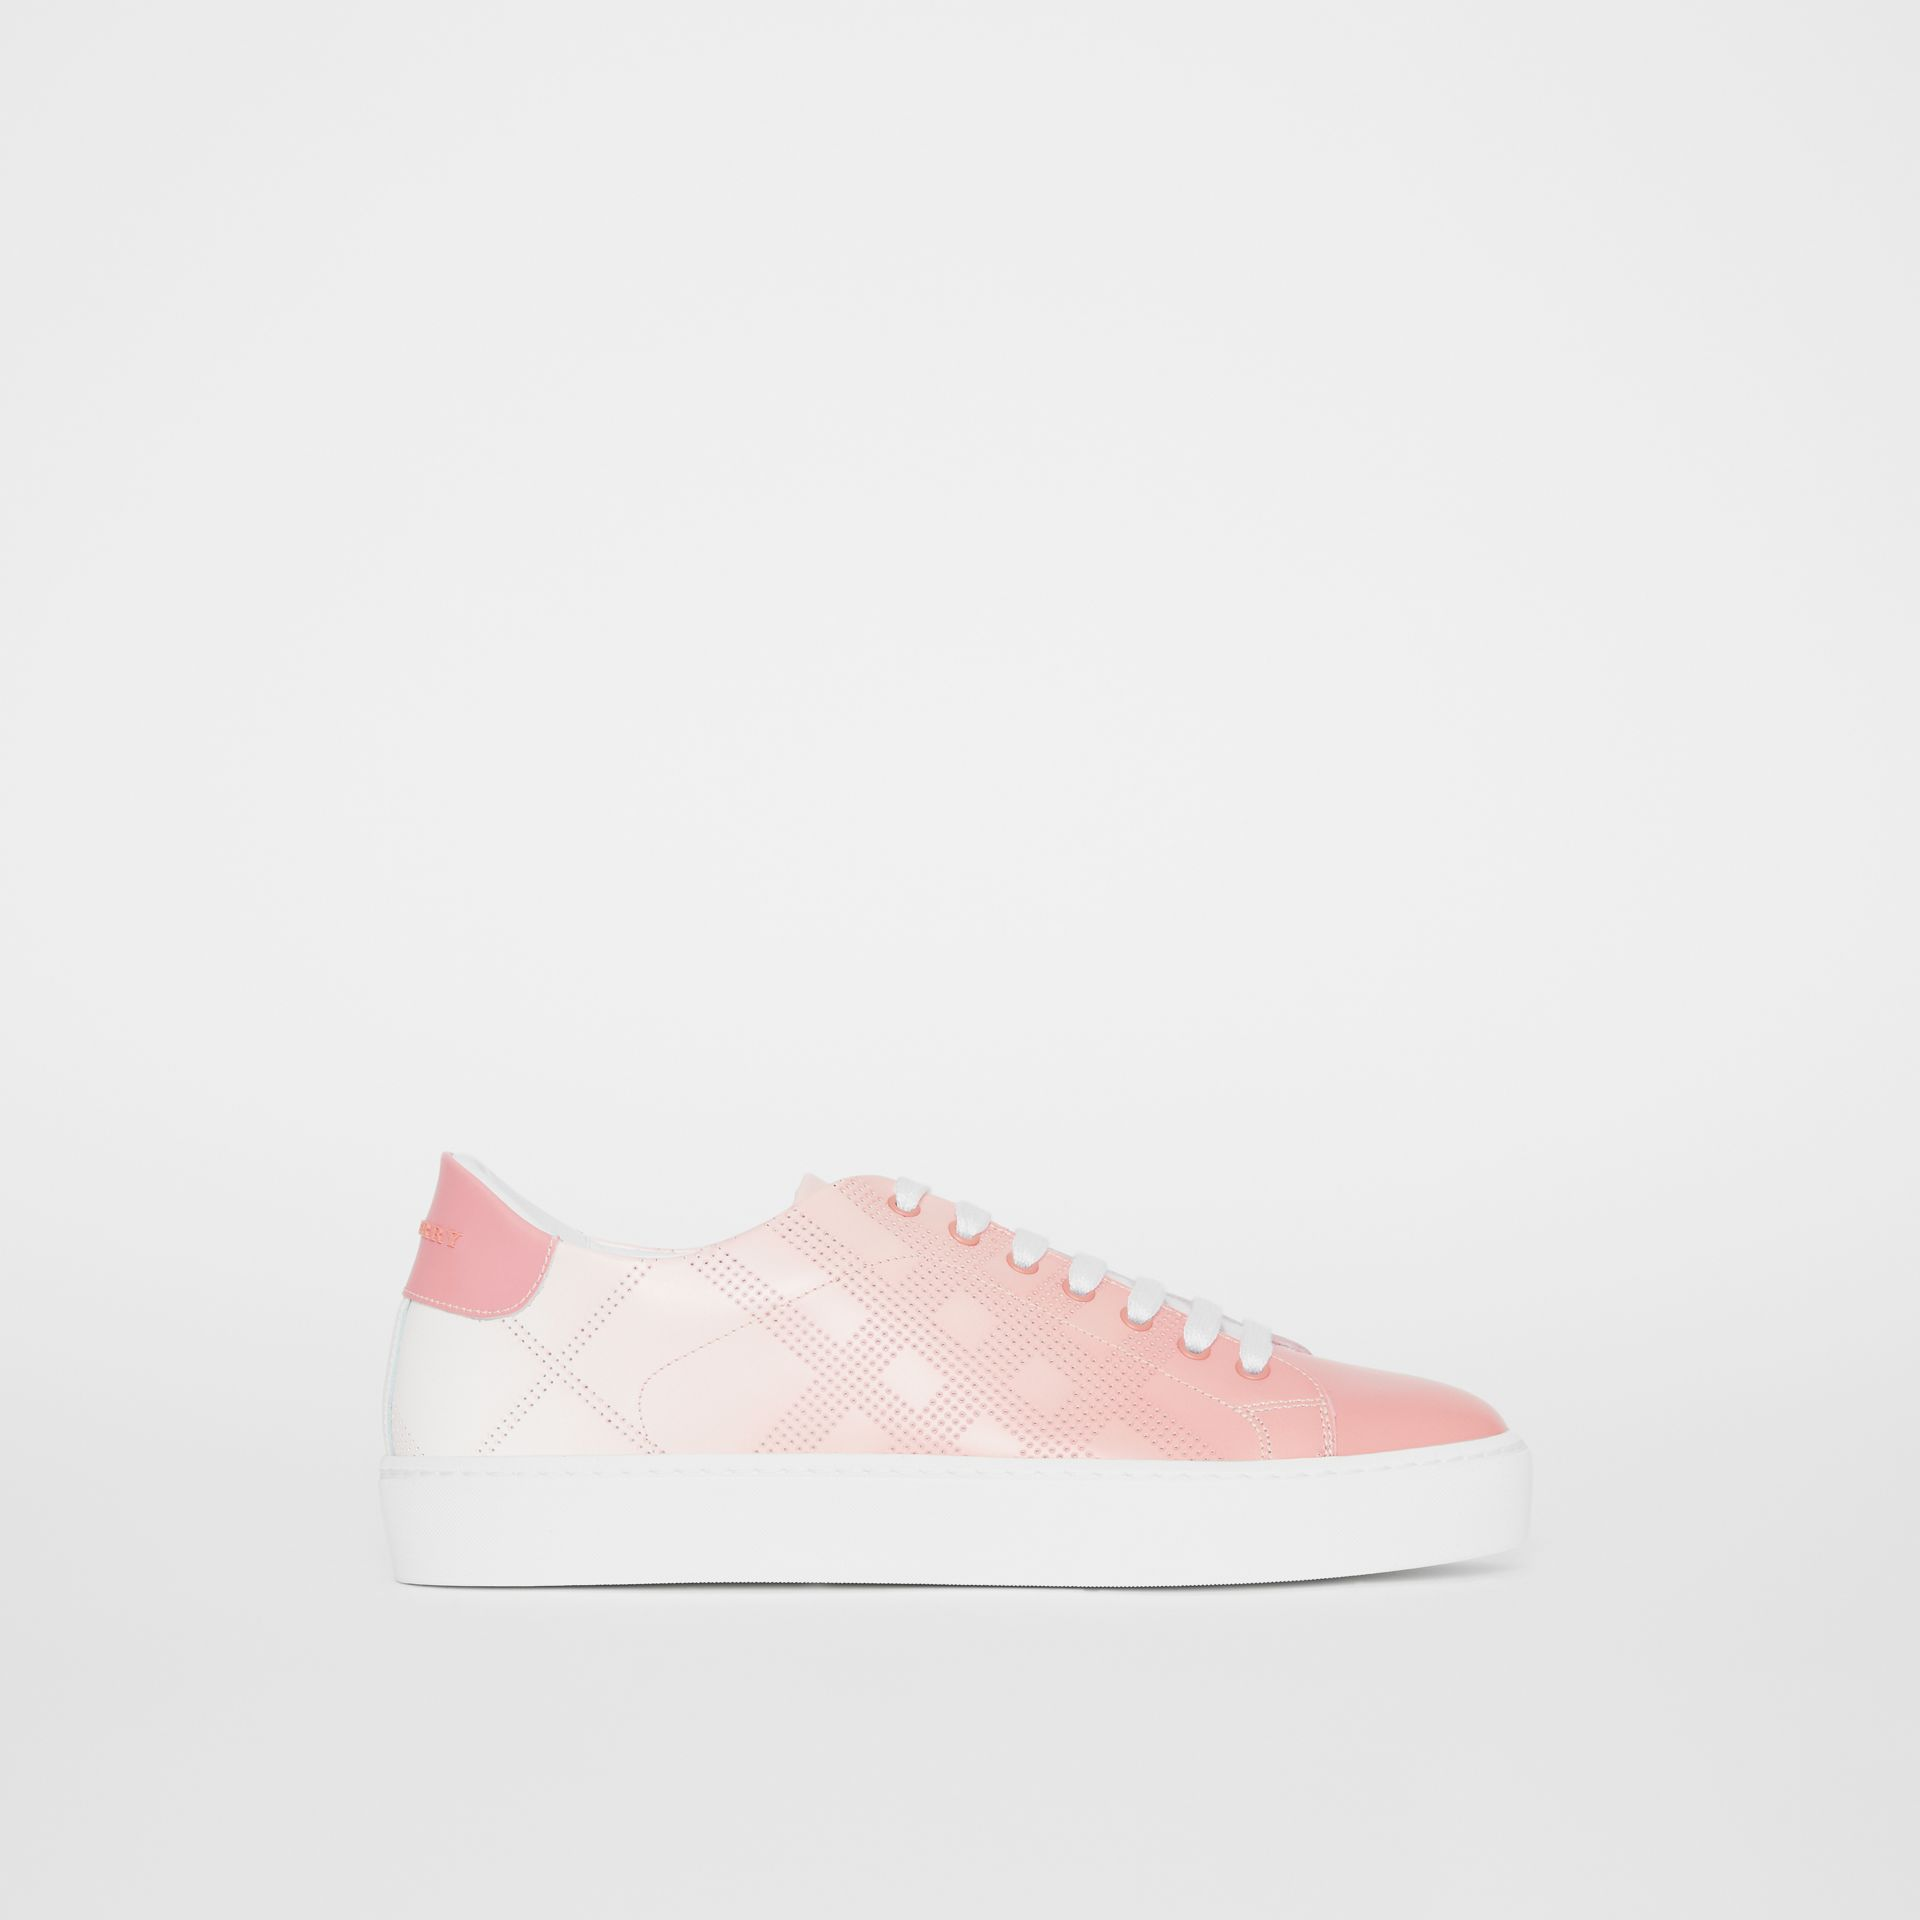 Sneakers en cuir avec dégradé et motif check perforé (Rose Sucré) - Femme | Burberry - photo de la galerie 5